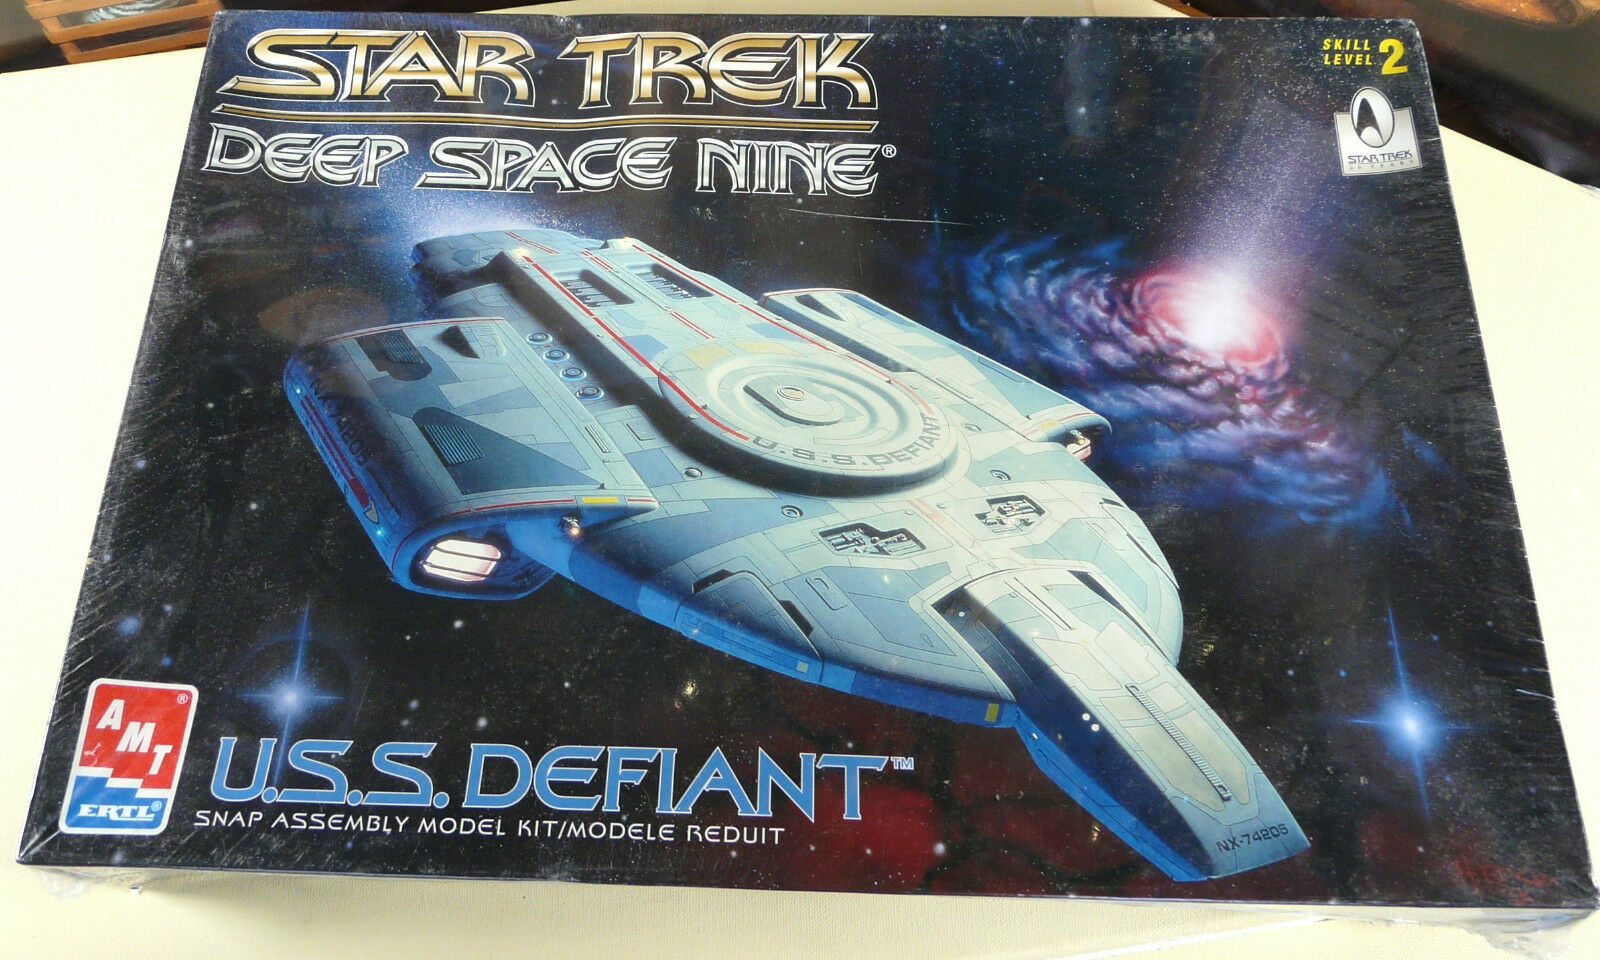 Star Trek Deep Space Nine U.S.S. Defiant AMT New Sealed